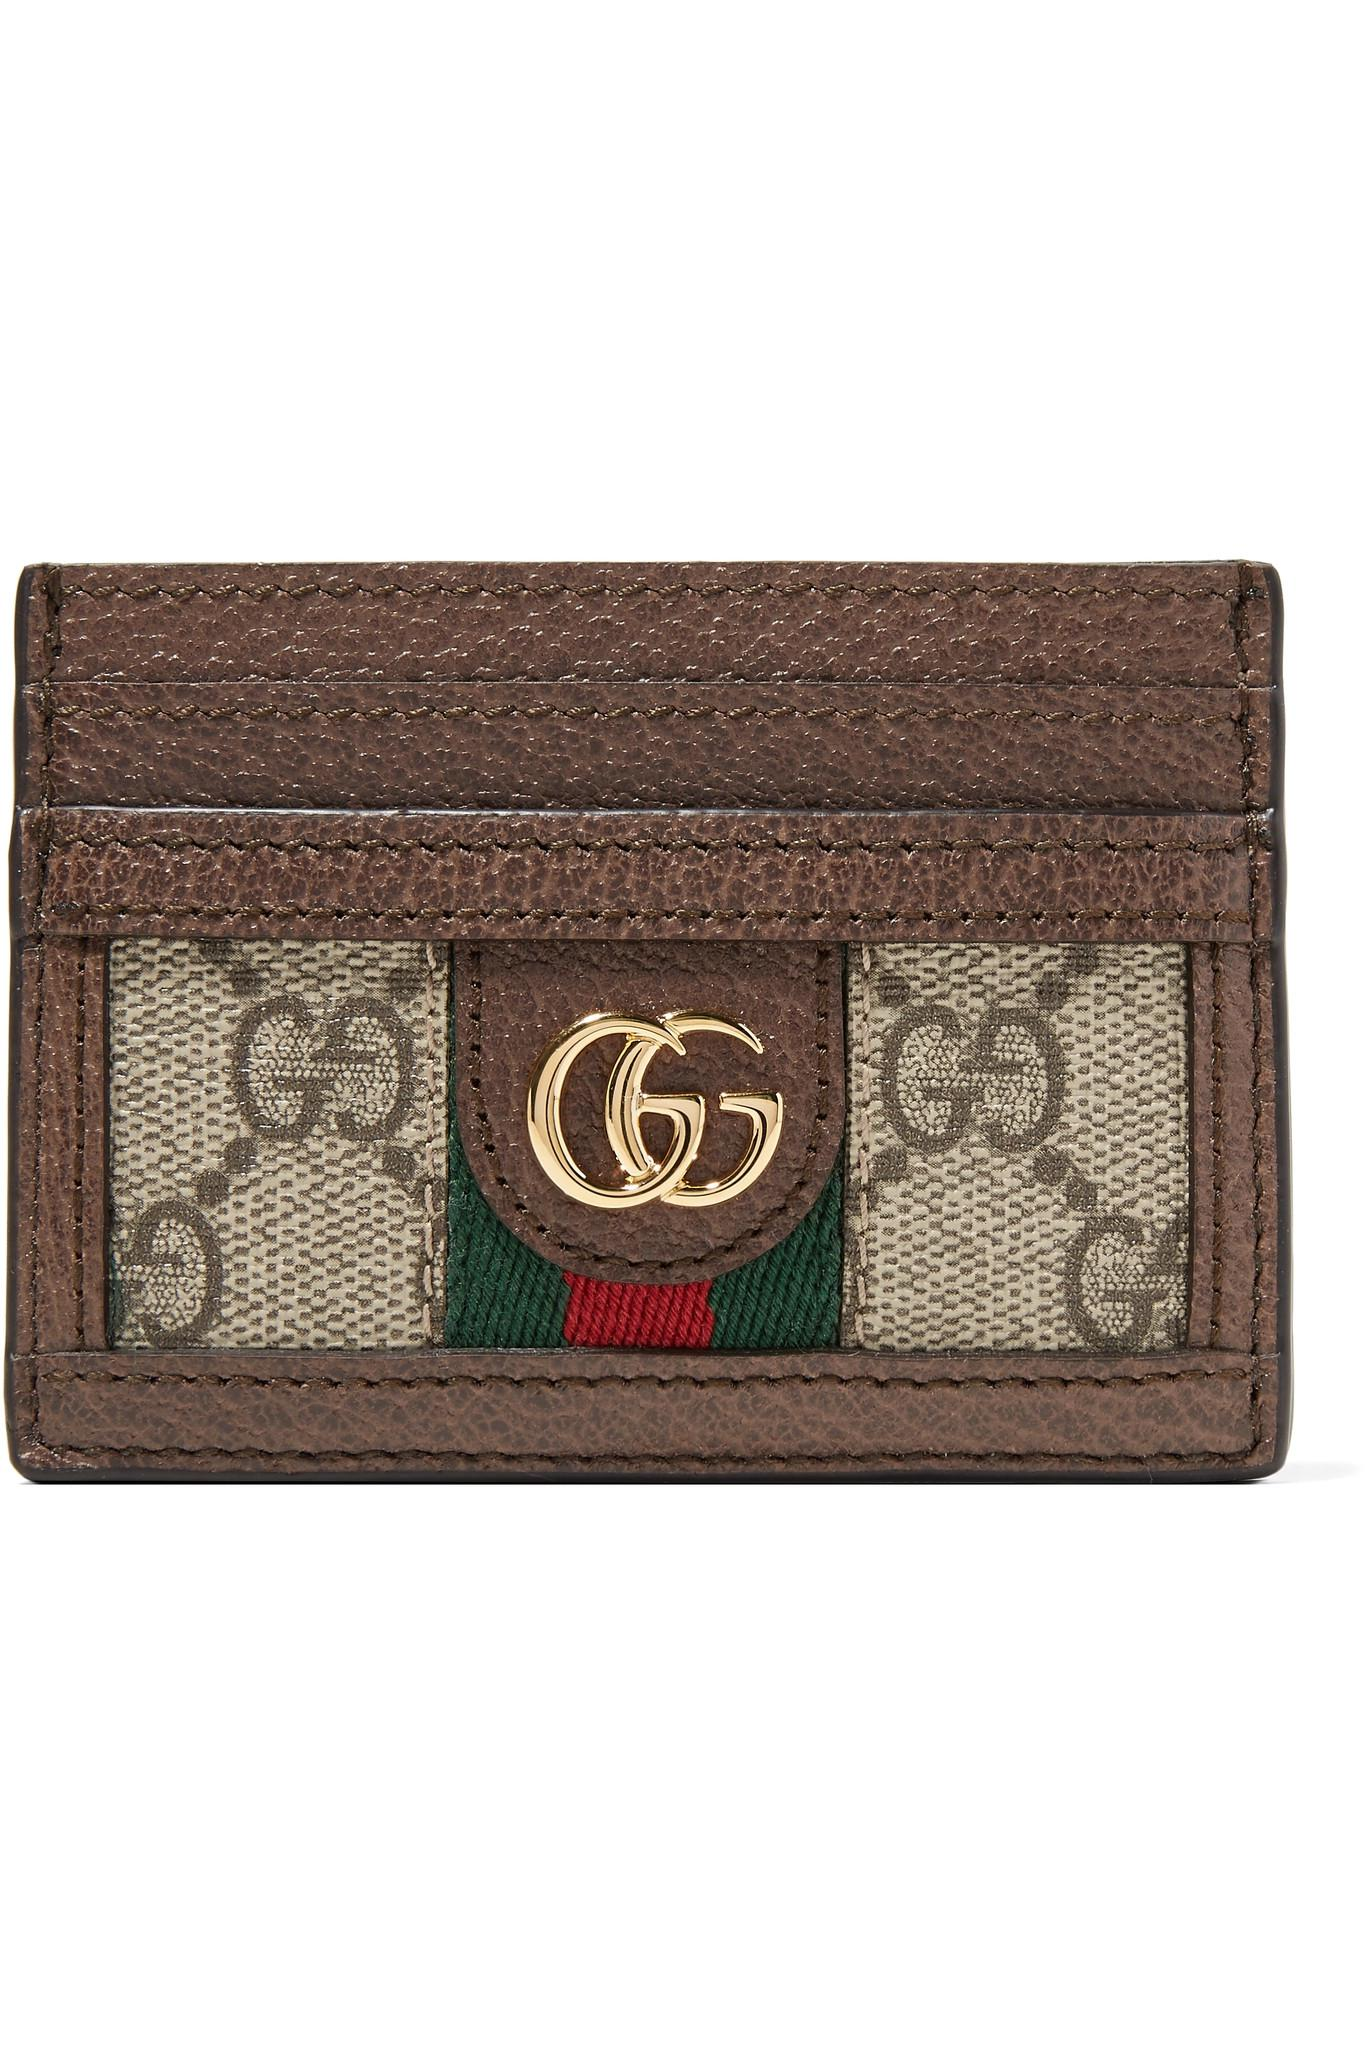 70f11d283e9 Gucci Ophidia Gg Plaque Leather Cardholder - Save 29% - Lyst